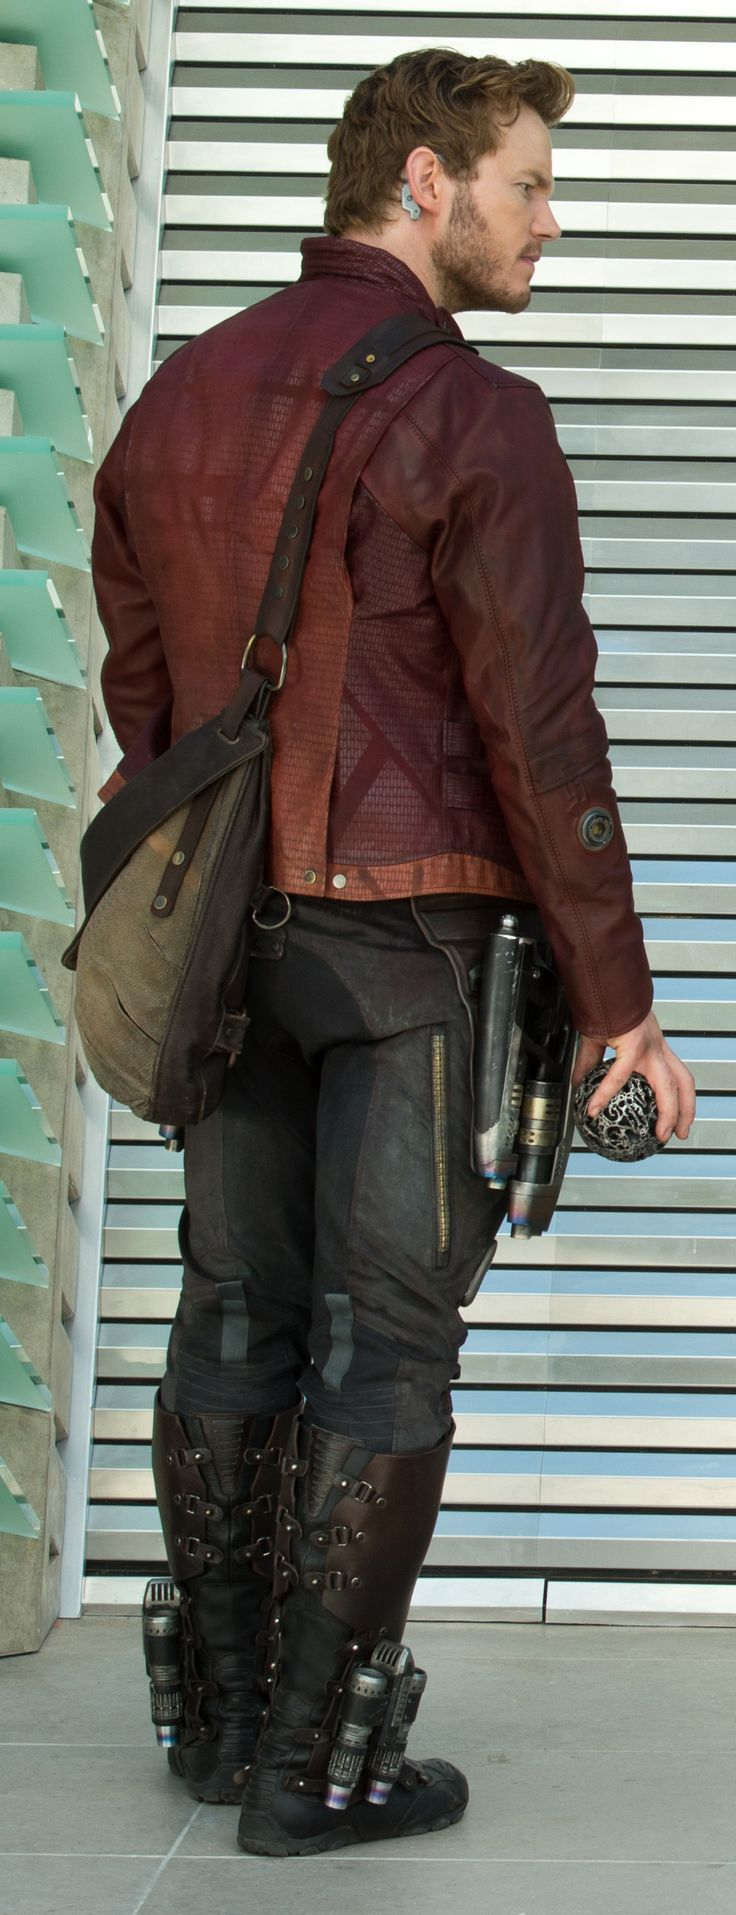 Star-Lord - Closeup of Peter Quill's back                                                                                                                                                                                 More